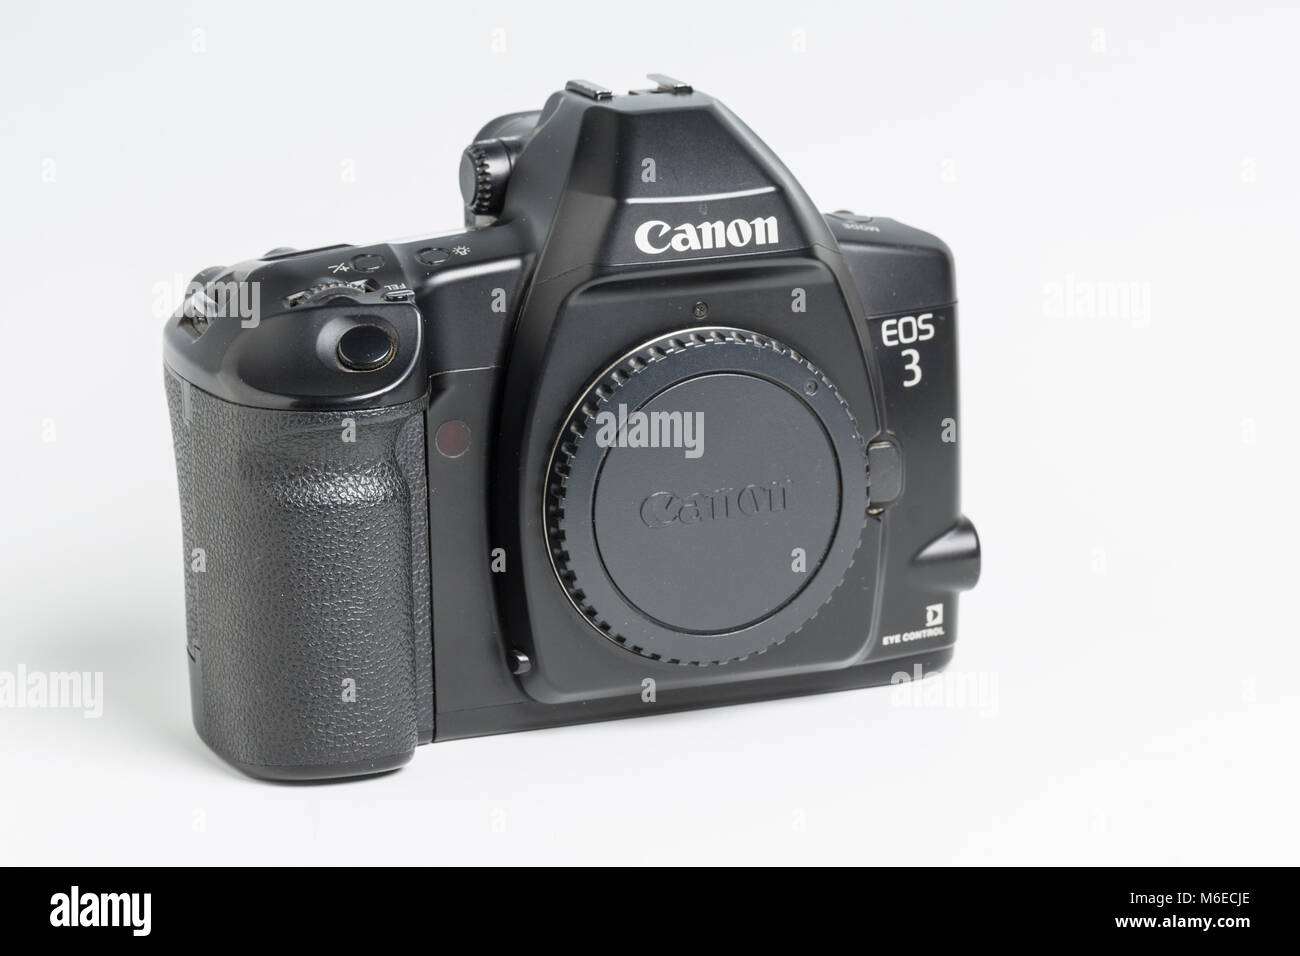 Canon EOS 3 semi-professional SLR film camera with eye-controlled focussing.  Introduced 1998. - Stock Image